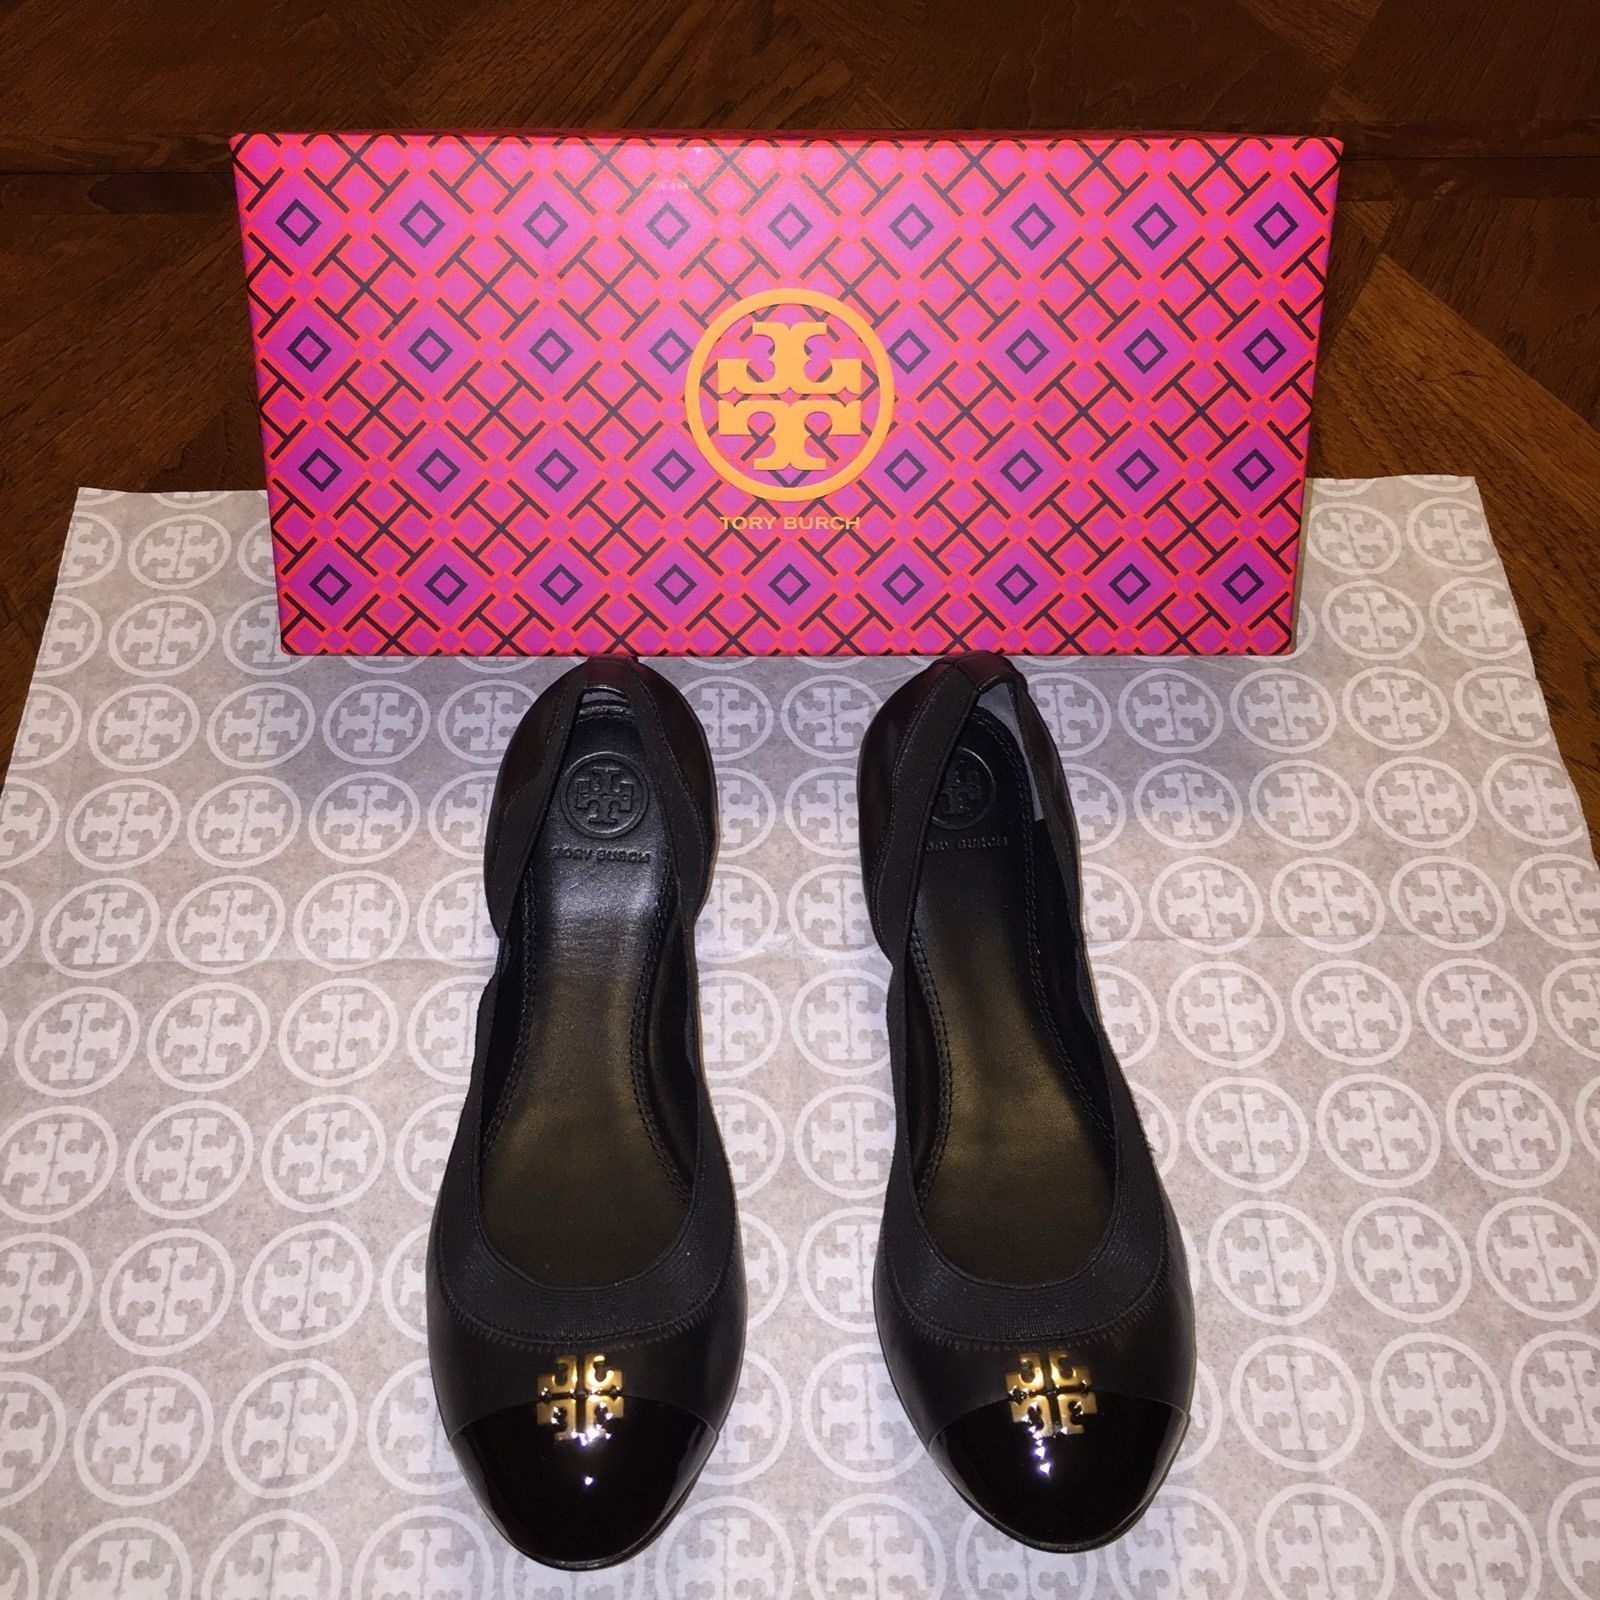 af058b253557 NIB Tory Burch Jolie Ballet Flat Size 9 in and 50 similar items. S l1600